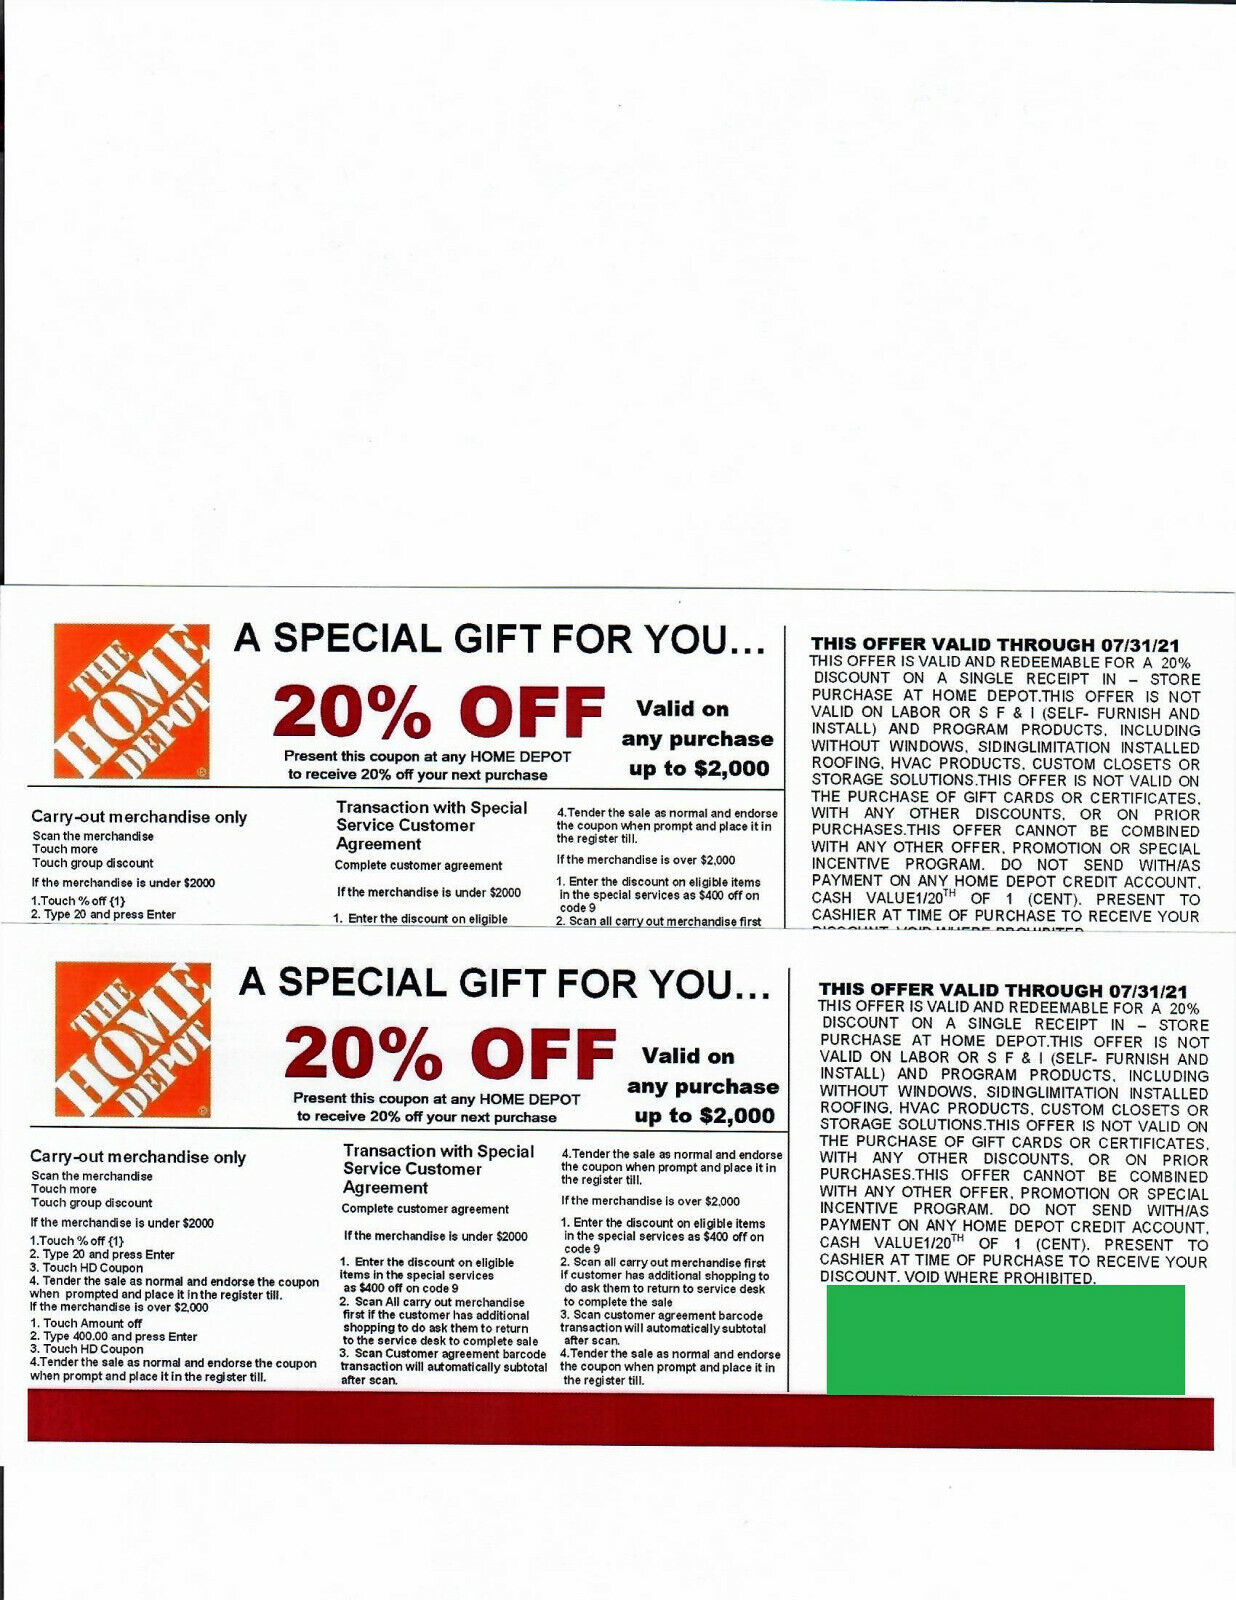 2 20 OFF HOME DEPOT Competitors Coupon Expires 7/31/21 - $10.00